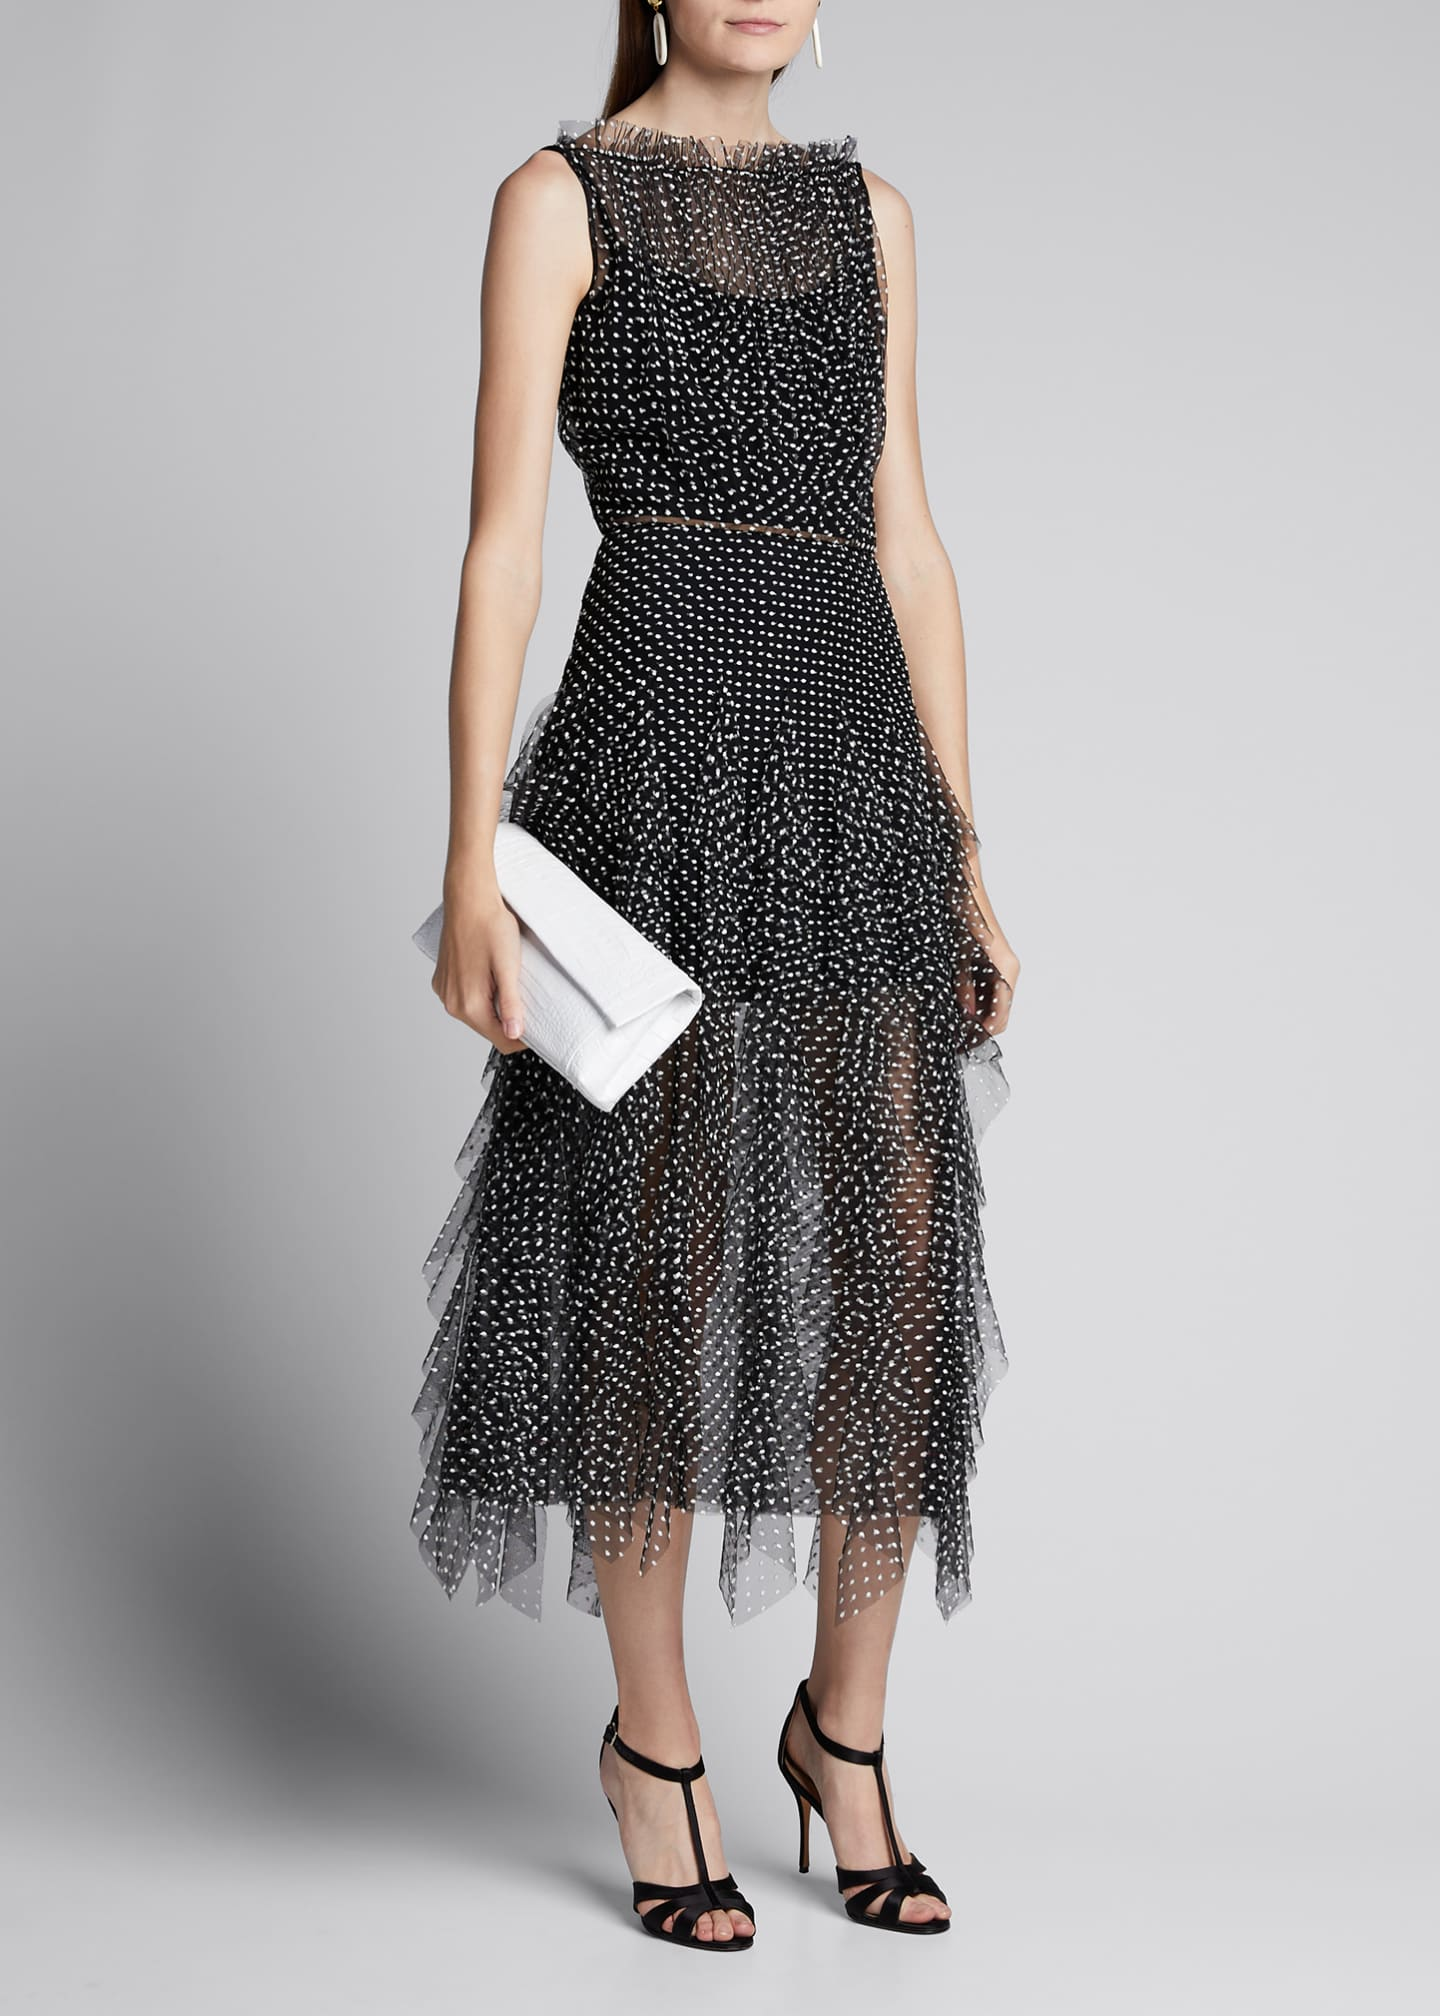 Image 1 of 5: Polka Dot Tulle Dress